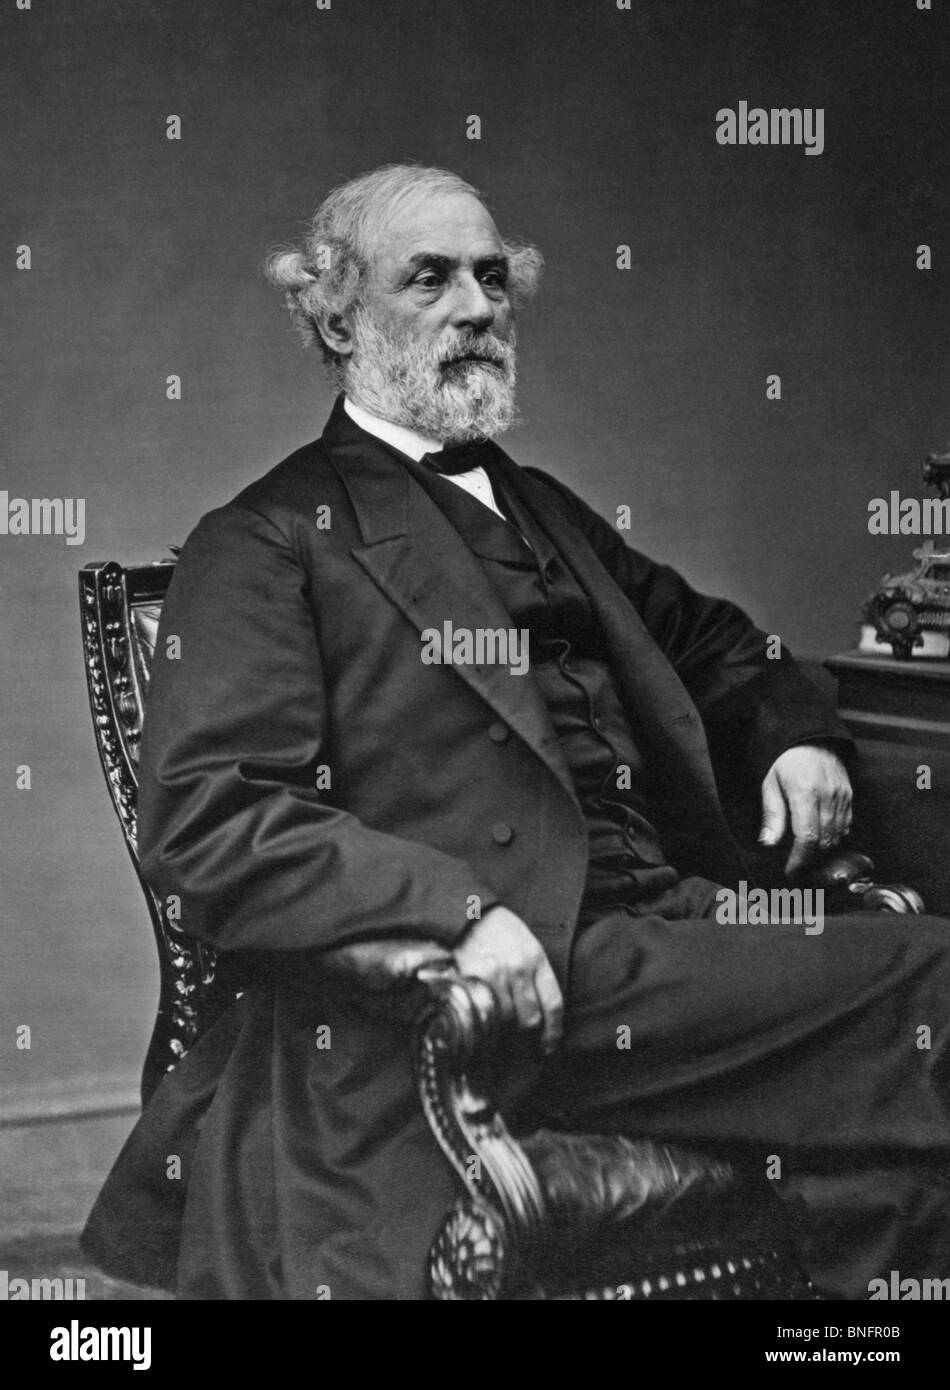 Portrait photo circa late 1860s of General Robert E Lee (1807 - 1870) - iconic Confederate commander in the American - Stock Image